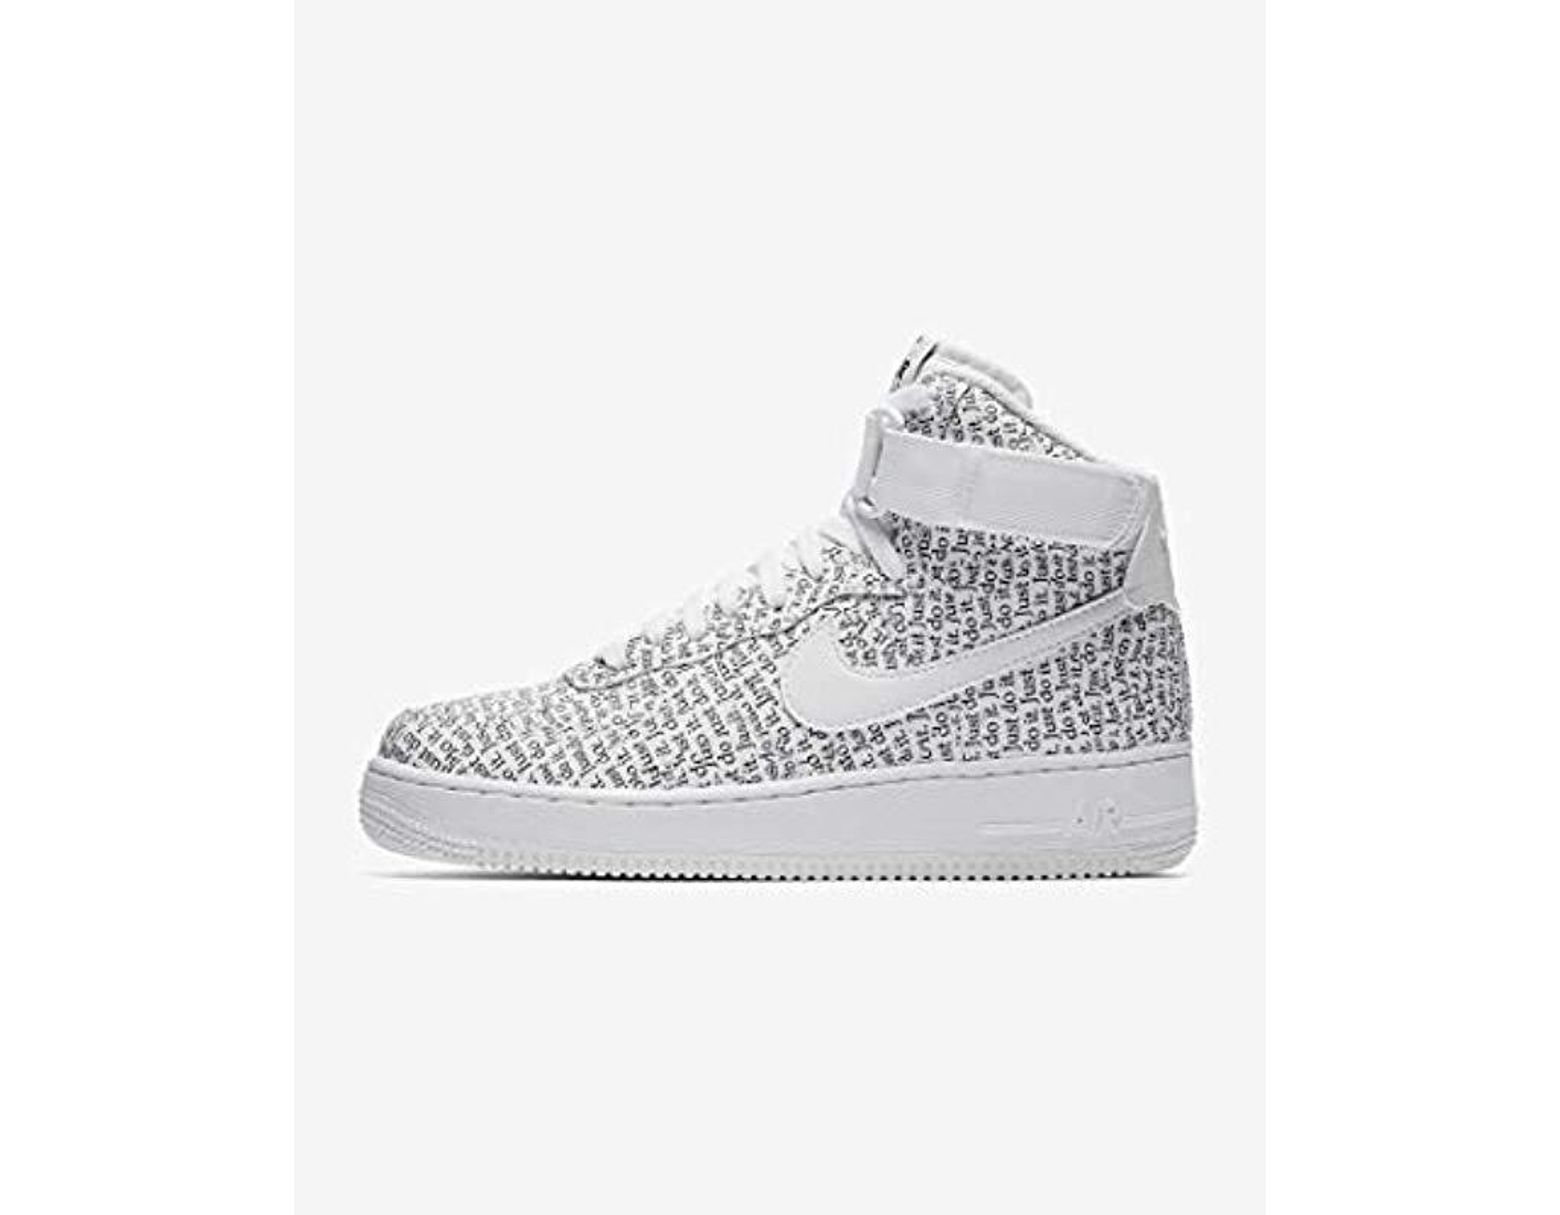 faa508fb4e5aa White Unisex Adults' Wmns Air Force 1 Hi Lx Fitness Shoes